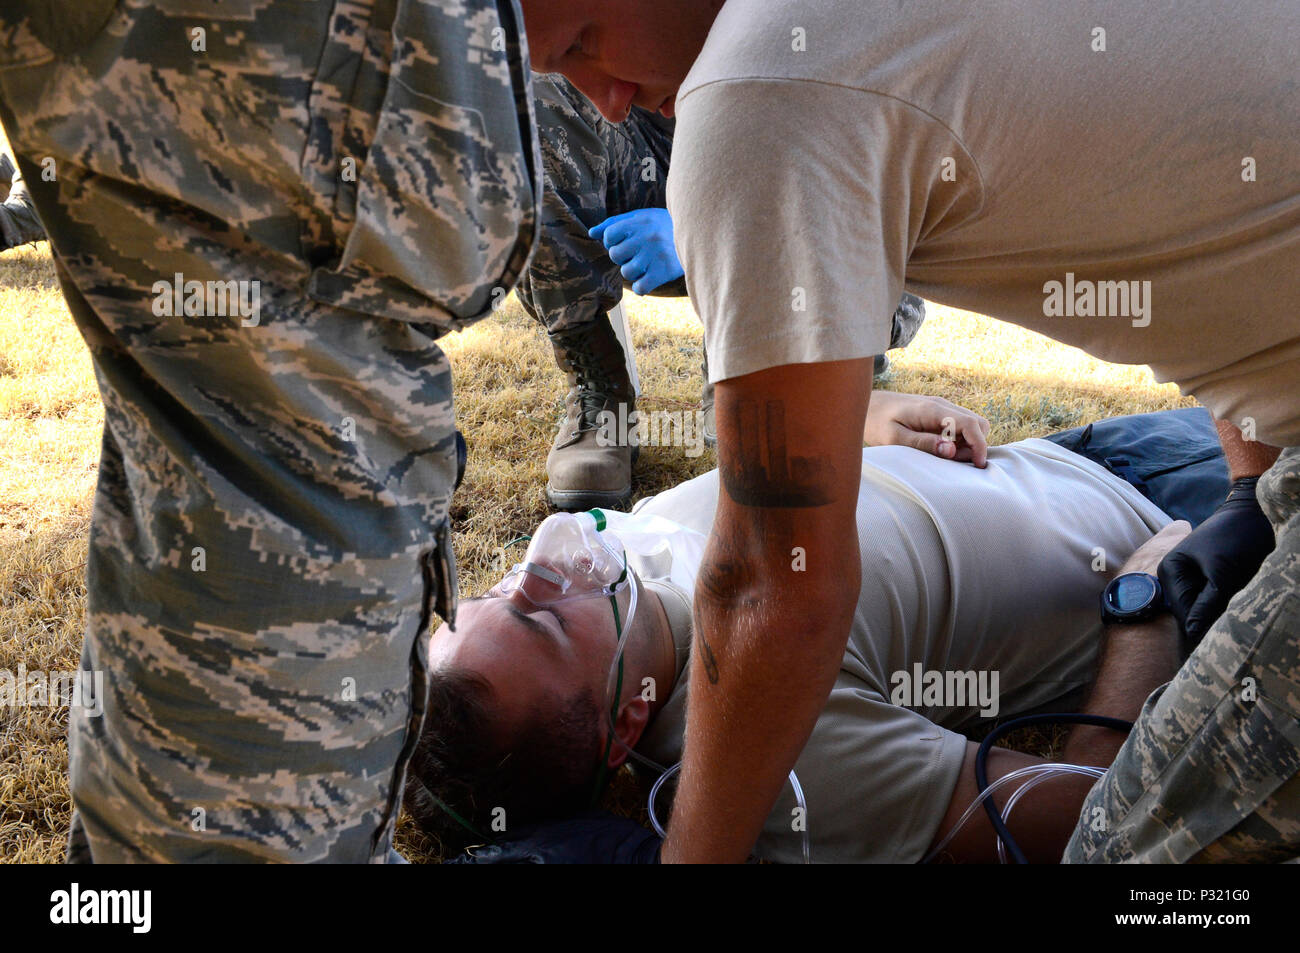 Emergency medical technicians assigned to Minot Air Force Base, N.D., treat a patient in a simulated hyperthermia scenario during the 2016 EMT Rodeo Aug. 26, 2016 at Cannon Air Force Base, N.M. Cannon's EMT Rodeo tests the skills of medical professionals from across the Air Force through a series of innovative, high-pressure scenarios. (U.S. Air Force photo by Tech. Sgt. Manuel J. Martinez) - Stock Image